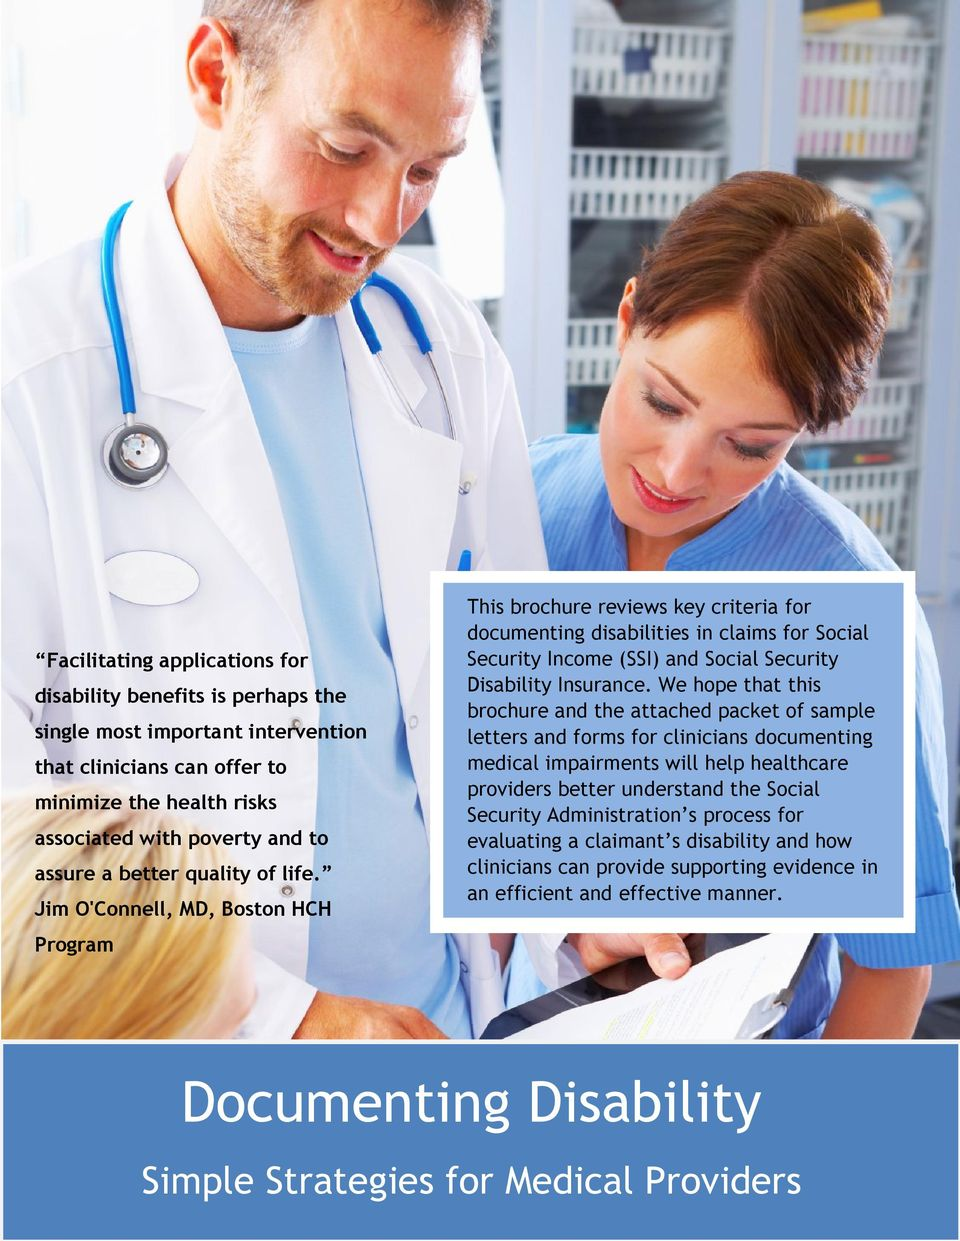 Jim O'Connell, MD, Boston HCH Program This brochure reviews key criteria for documenting disabilities in claims for Social Security Income (SSI) and Social Security Disability Insurance.